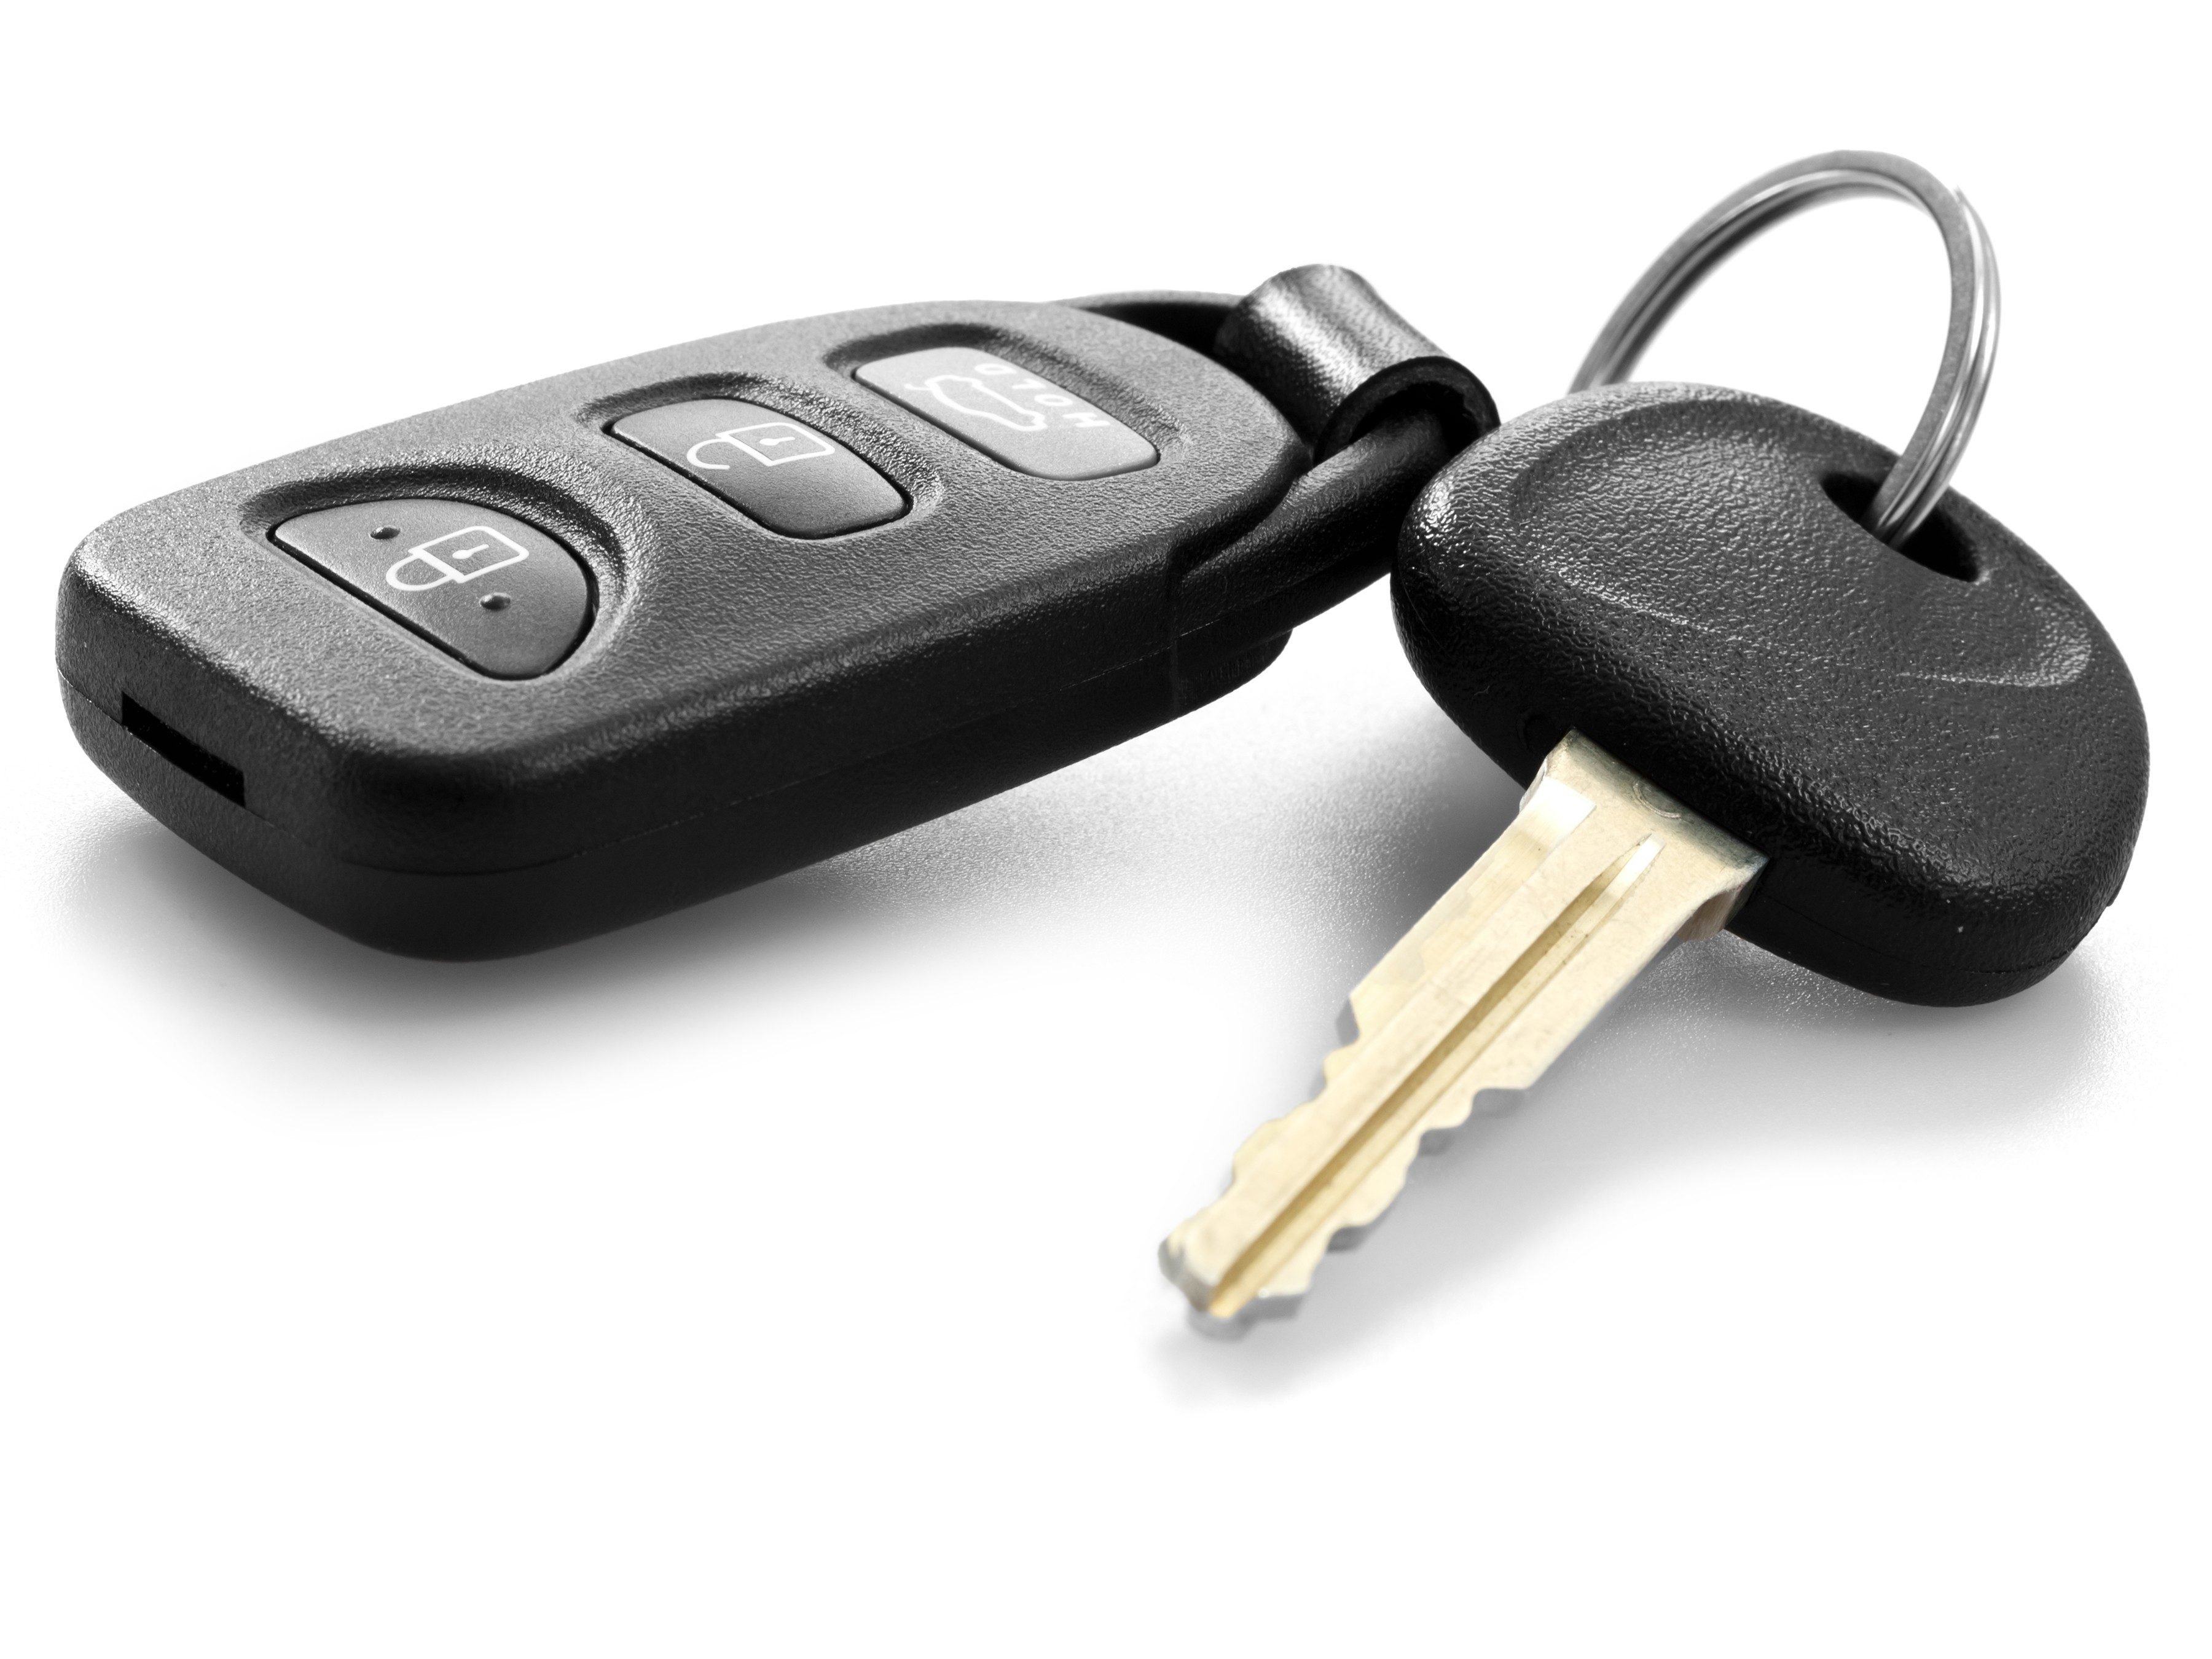 5. Keyless Ignition